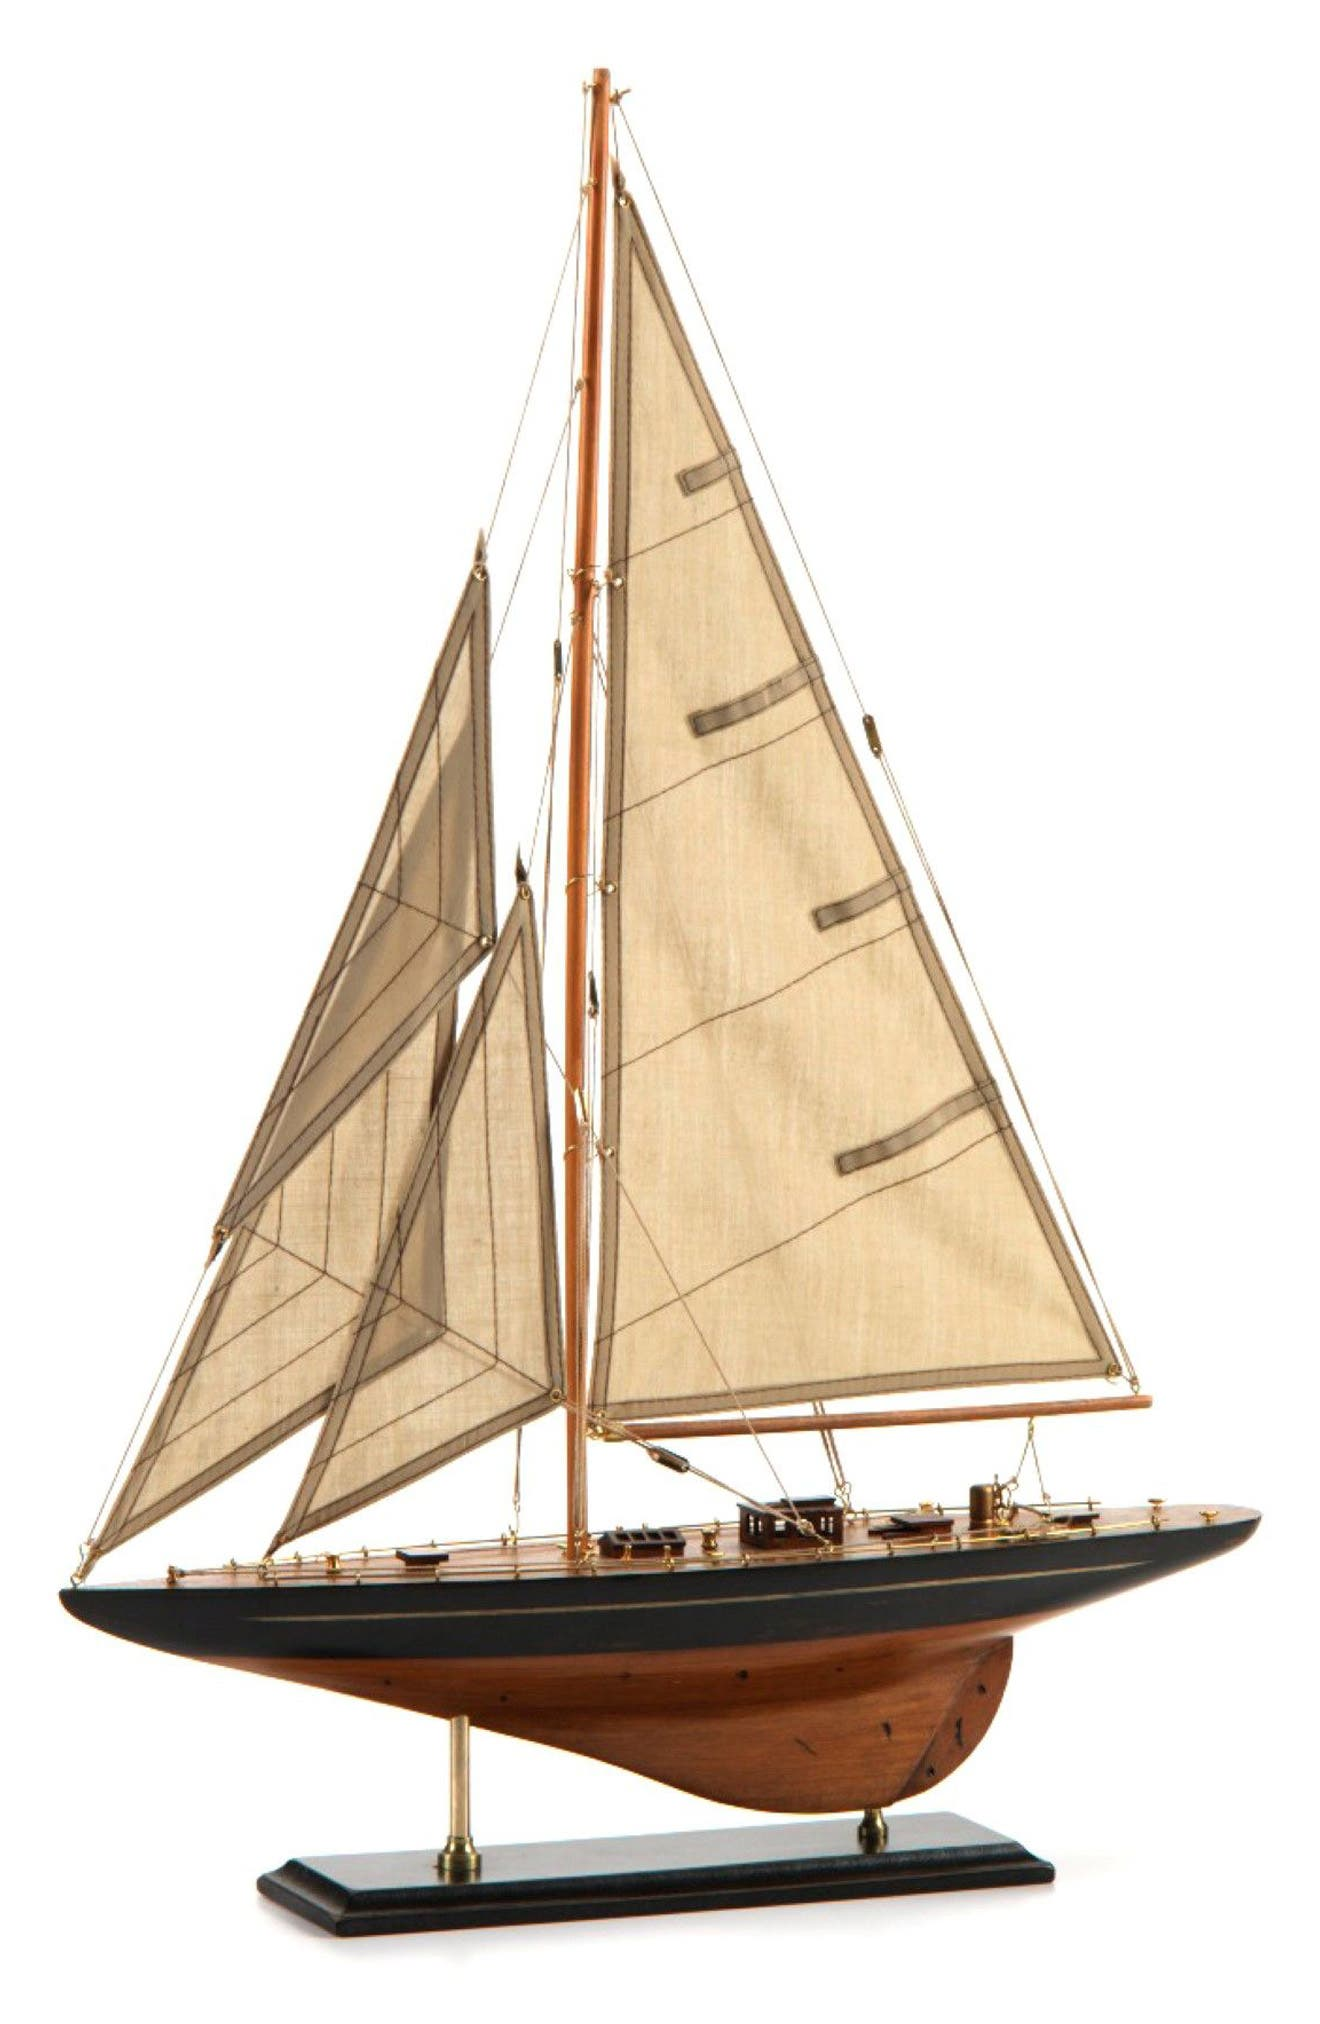 Murano Wooden Sailboat Model,                             Main thumbnail 1, color,                             Beige